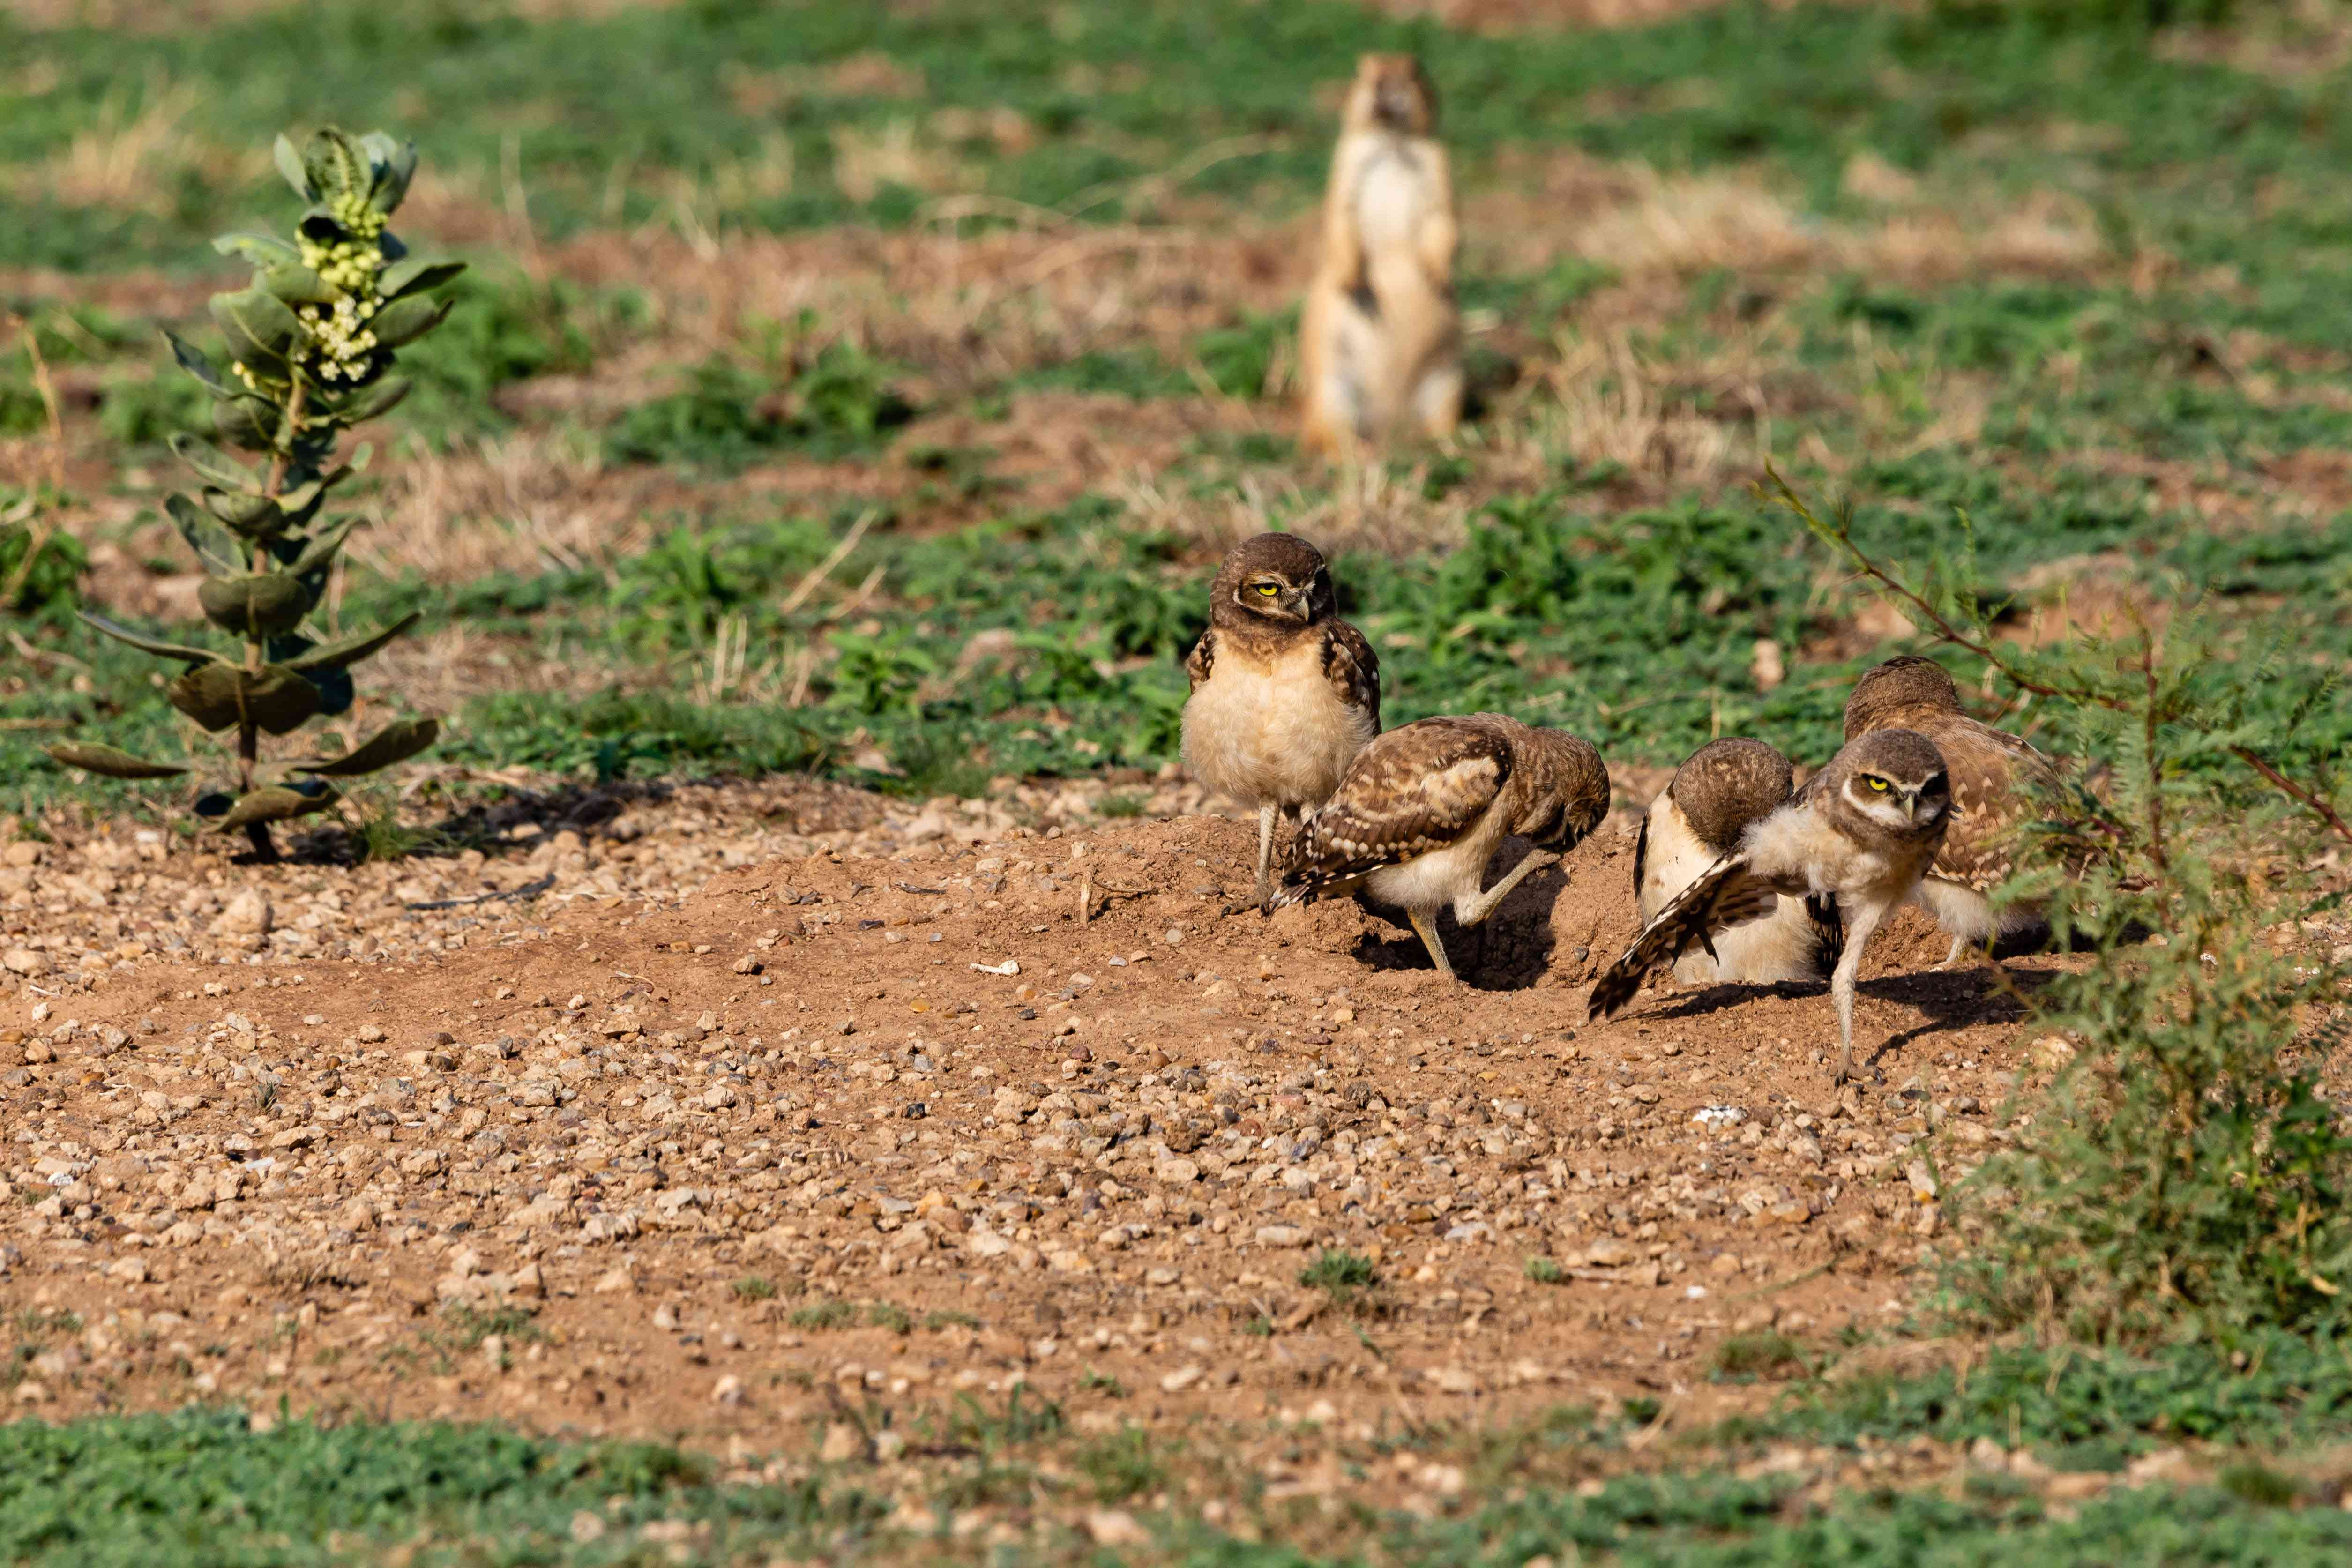 group of burrowing owls at prairie dog burrow entrance with prairie dog in background